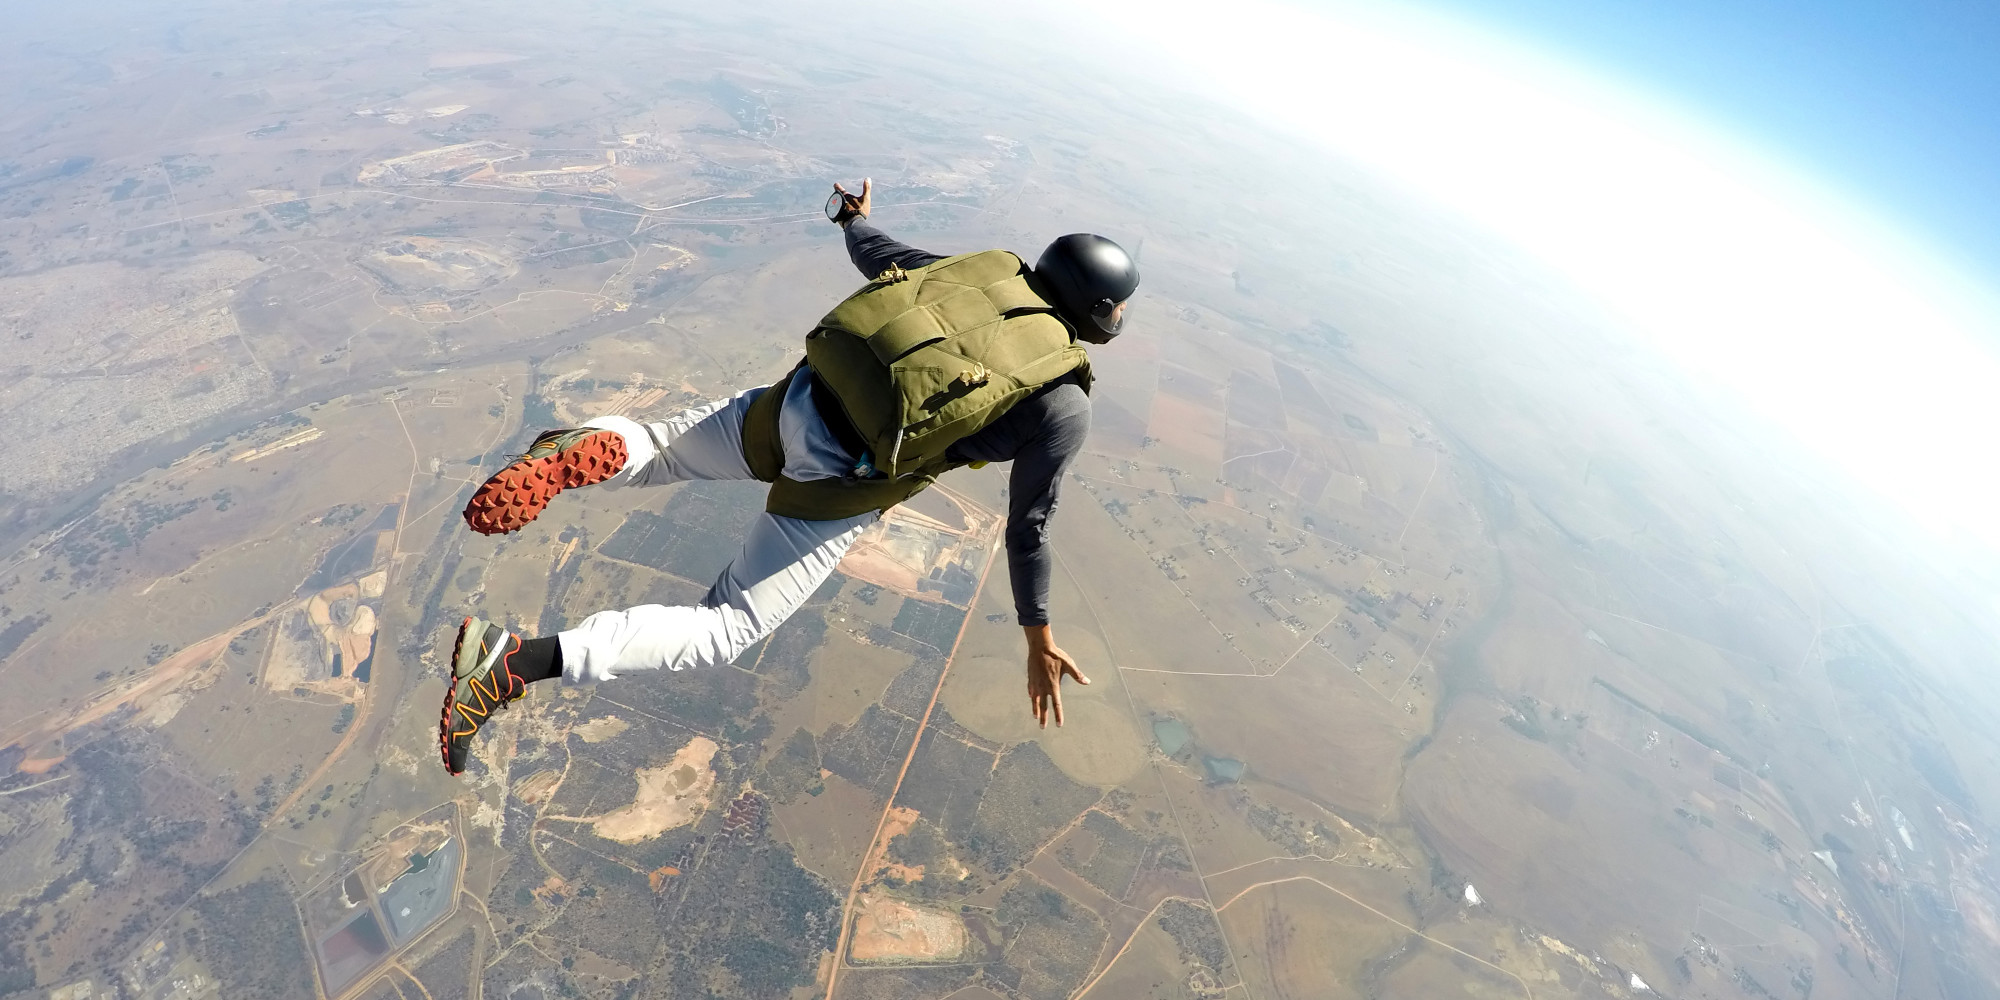 Naked Skydiving: Free Falling & Parachuting in the Nude